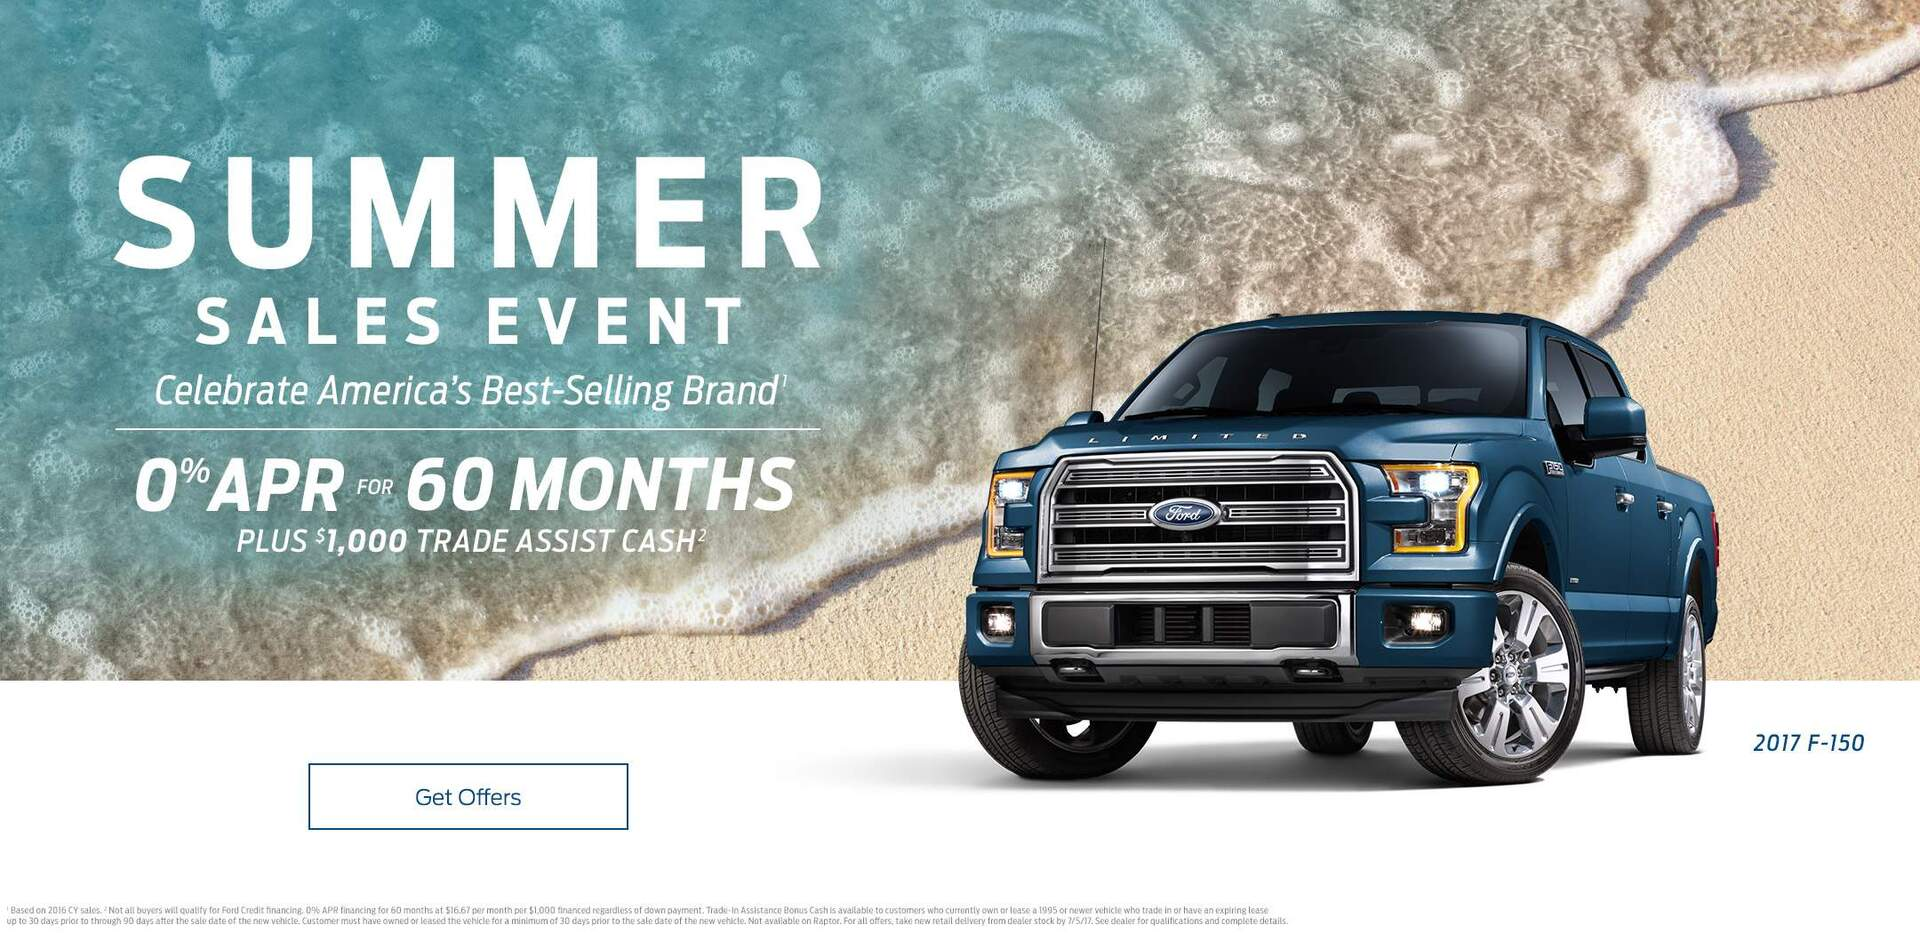 Summer Sales Event F150 0%